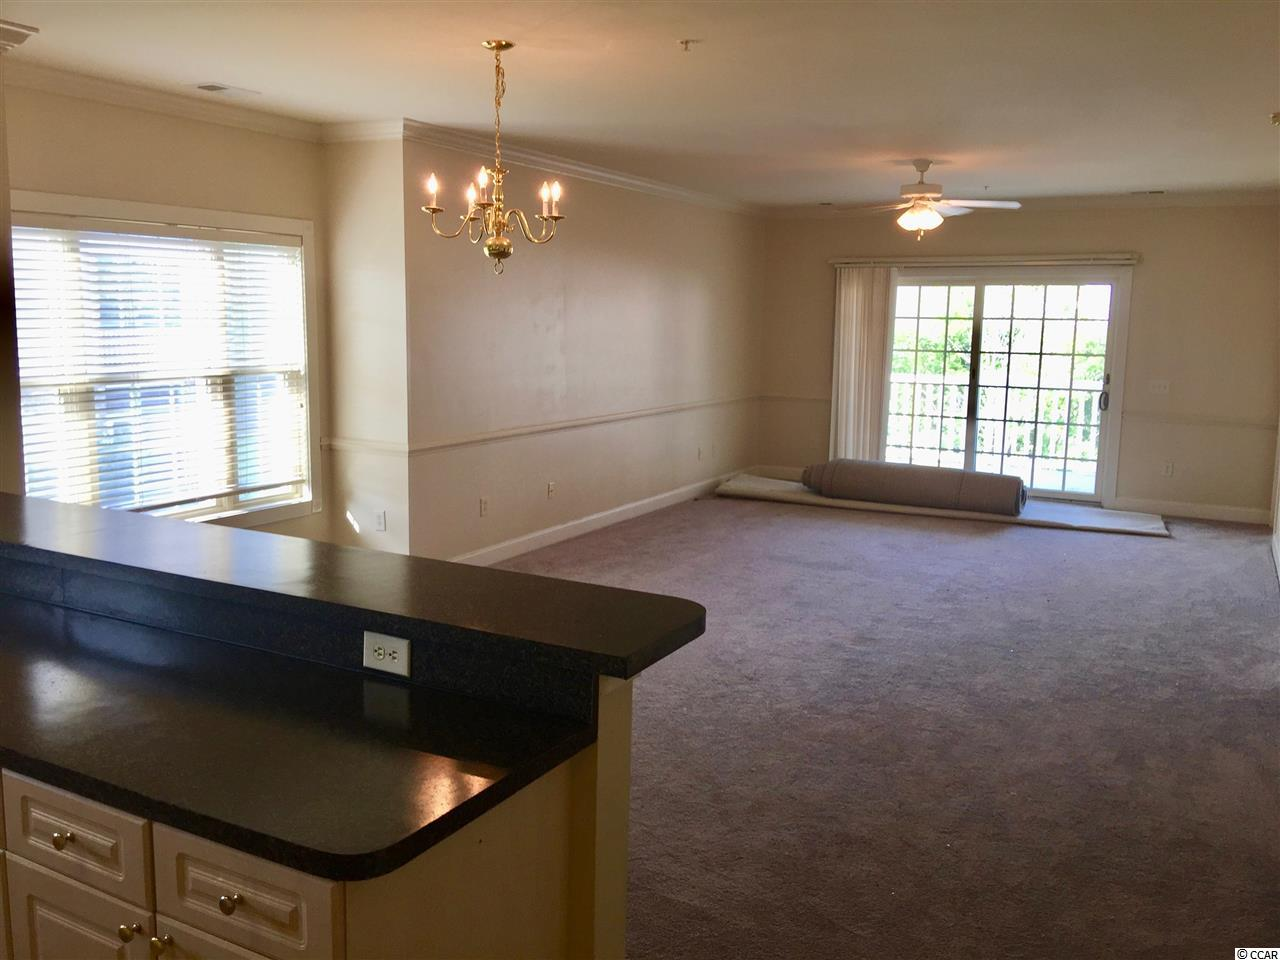 Contact your Realtor for this 3 bedroom condo for sale at  Magnolia Pointe